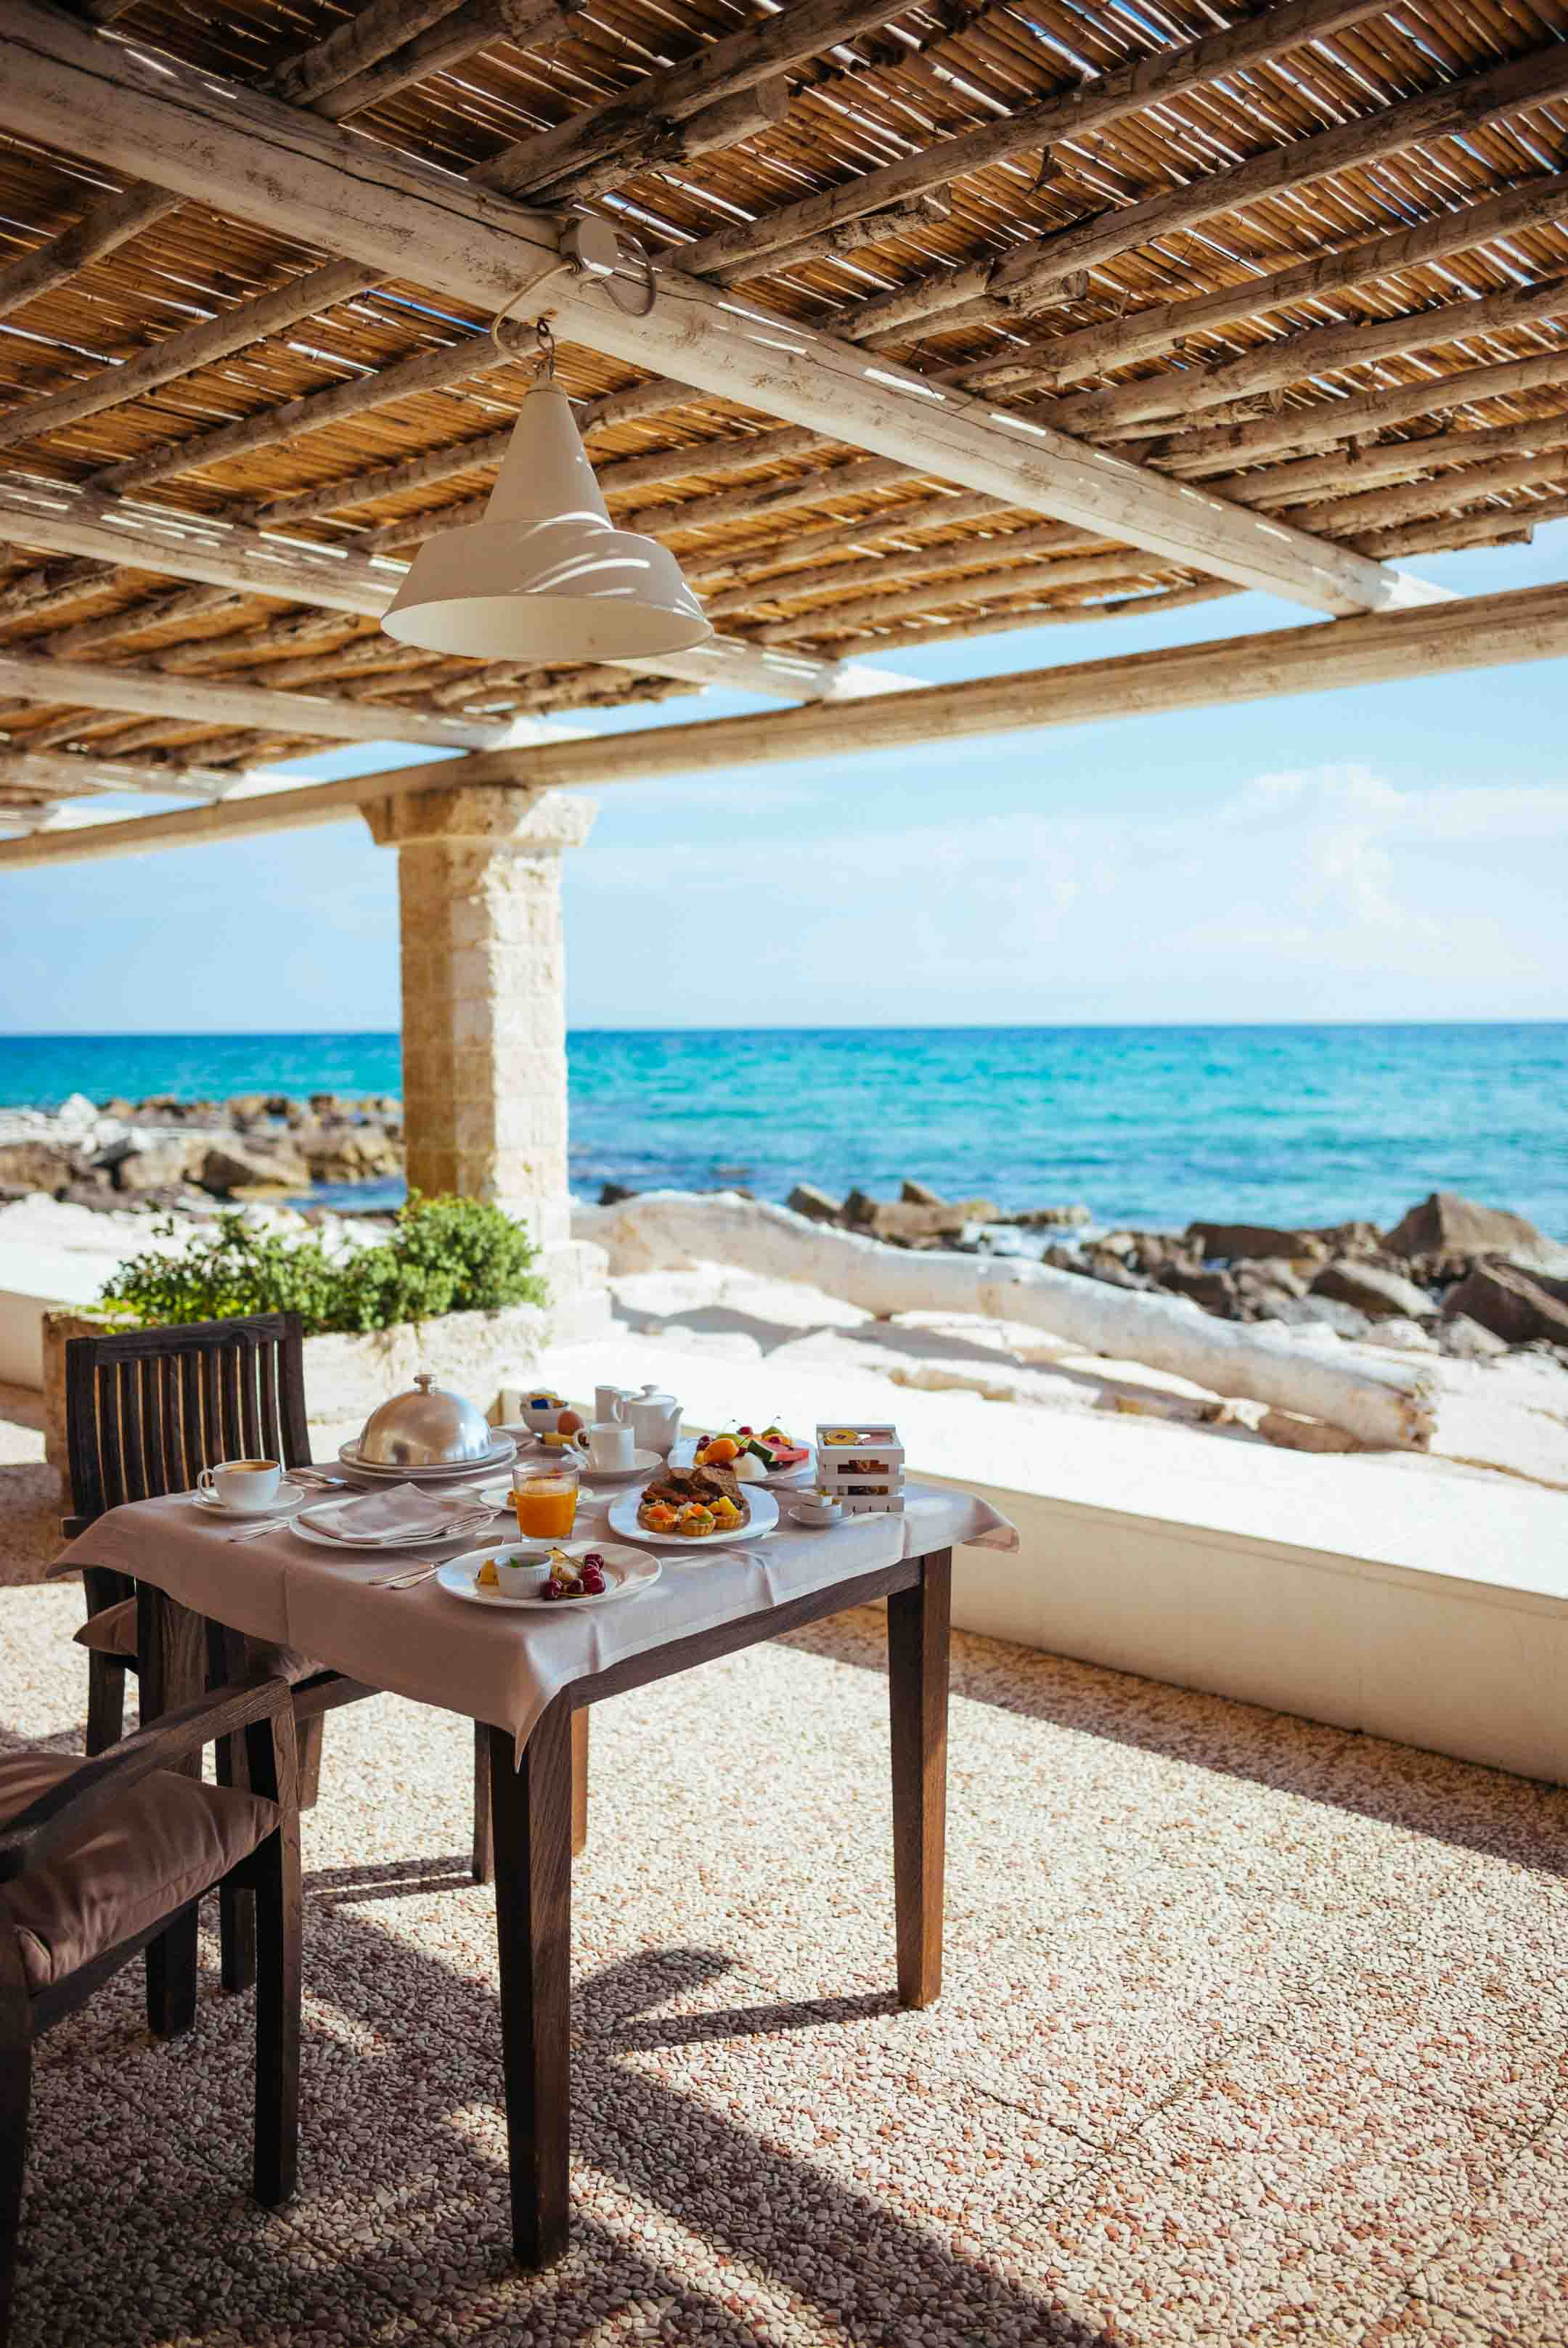 Custom breakfast is served each morning to your patio overlooking the ocean in this luxury Puglia hotel La Peschiera south of Monopoli, Italy, The Taste Edit